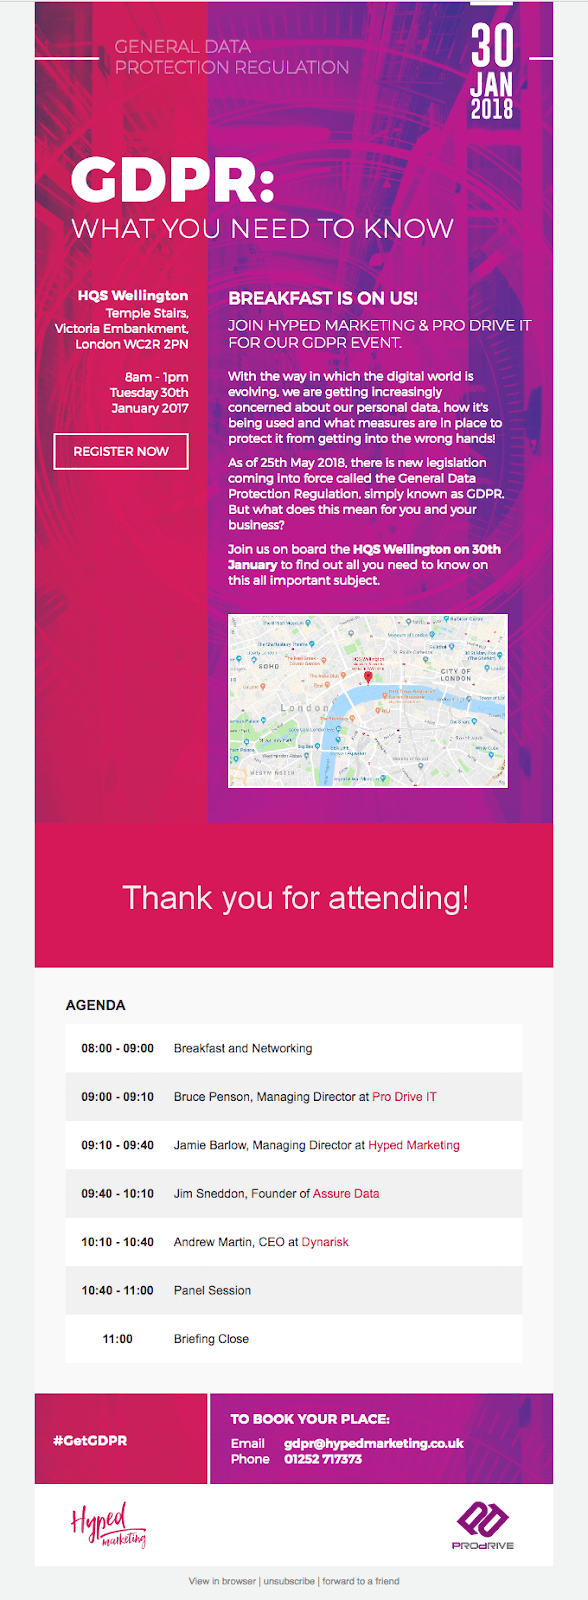 GDPR event invitation email template